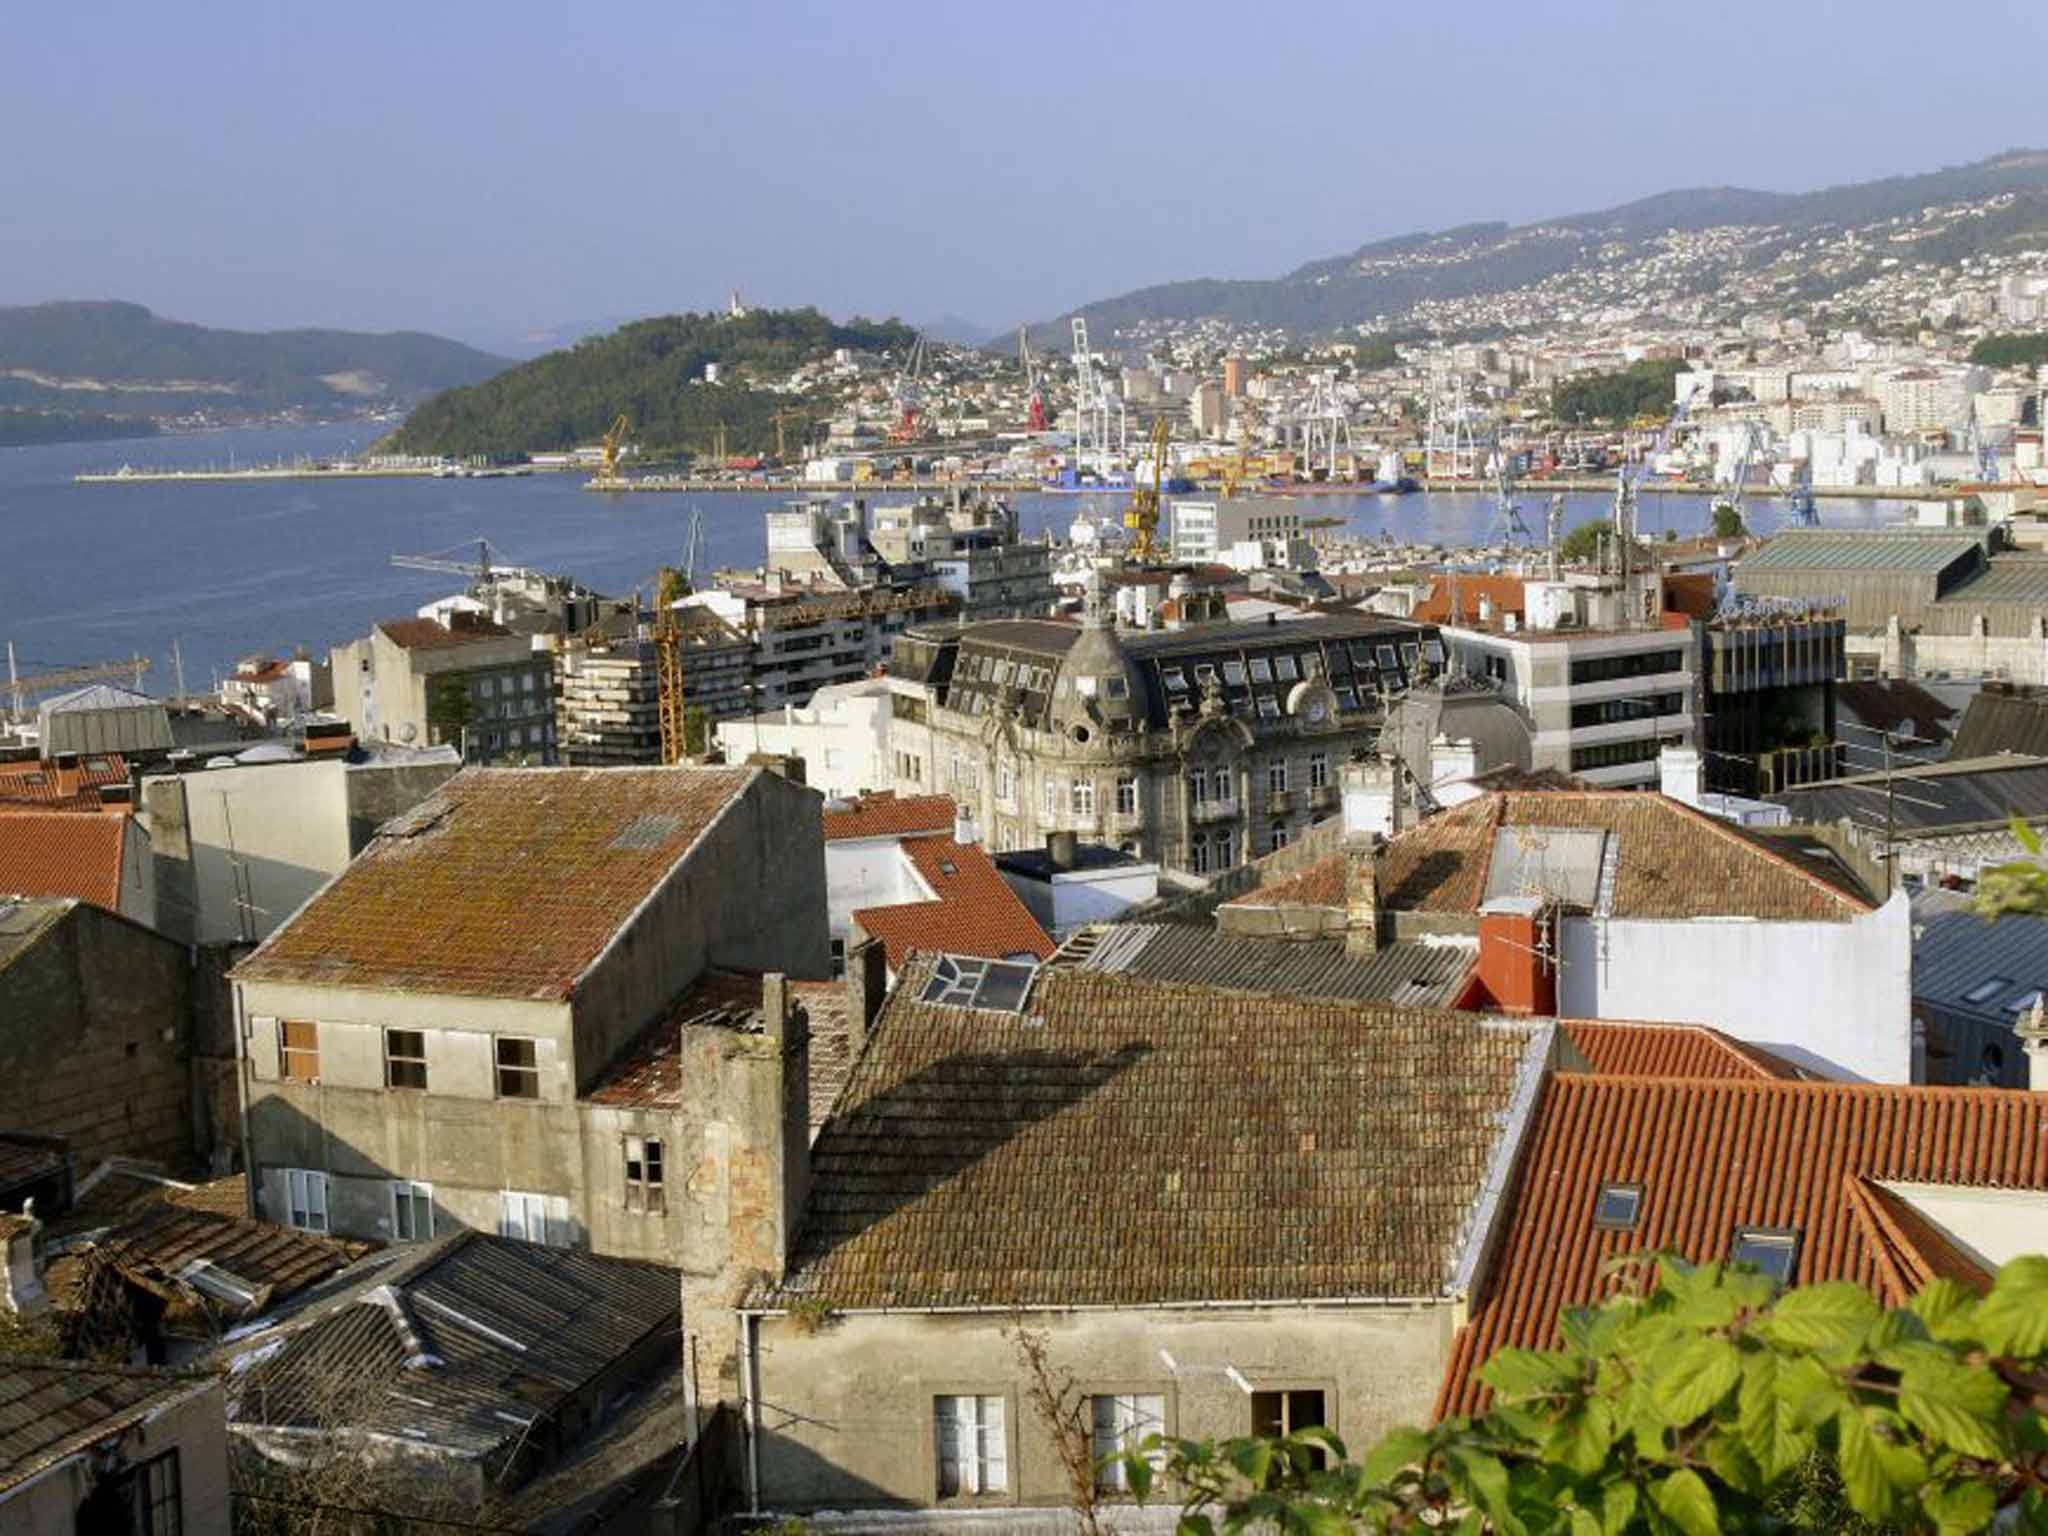 Vigo travel tips Where to go and what to see in 48 hours The